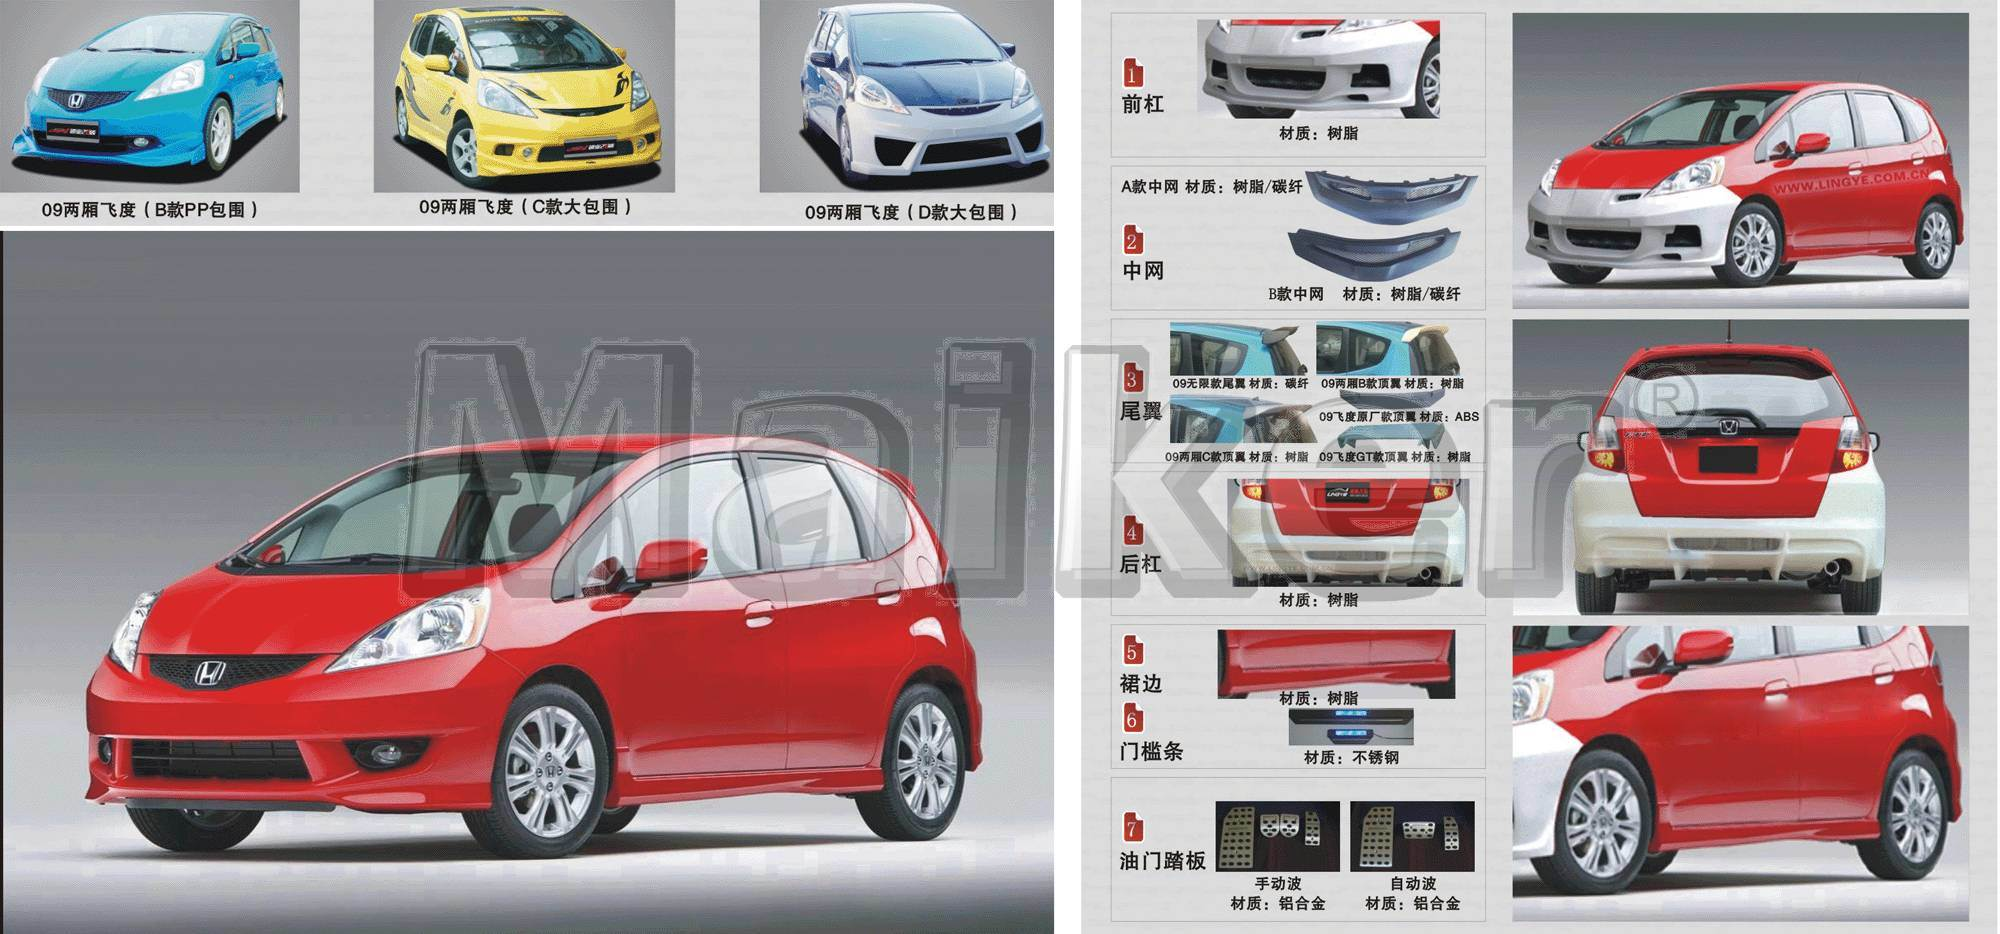 china body kits for honda fit 2009 aerodynamics photos pictures made in. Black Bedroom Furniture Sets. Home Design Ideas